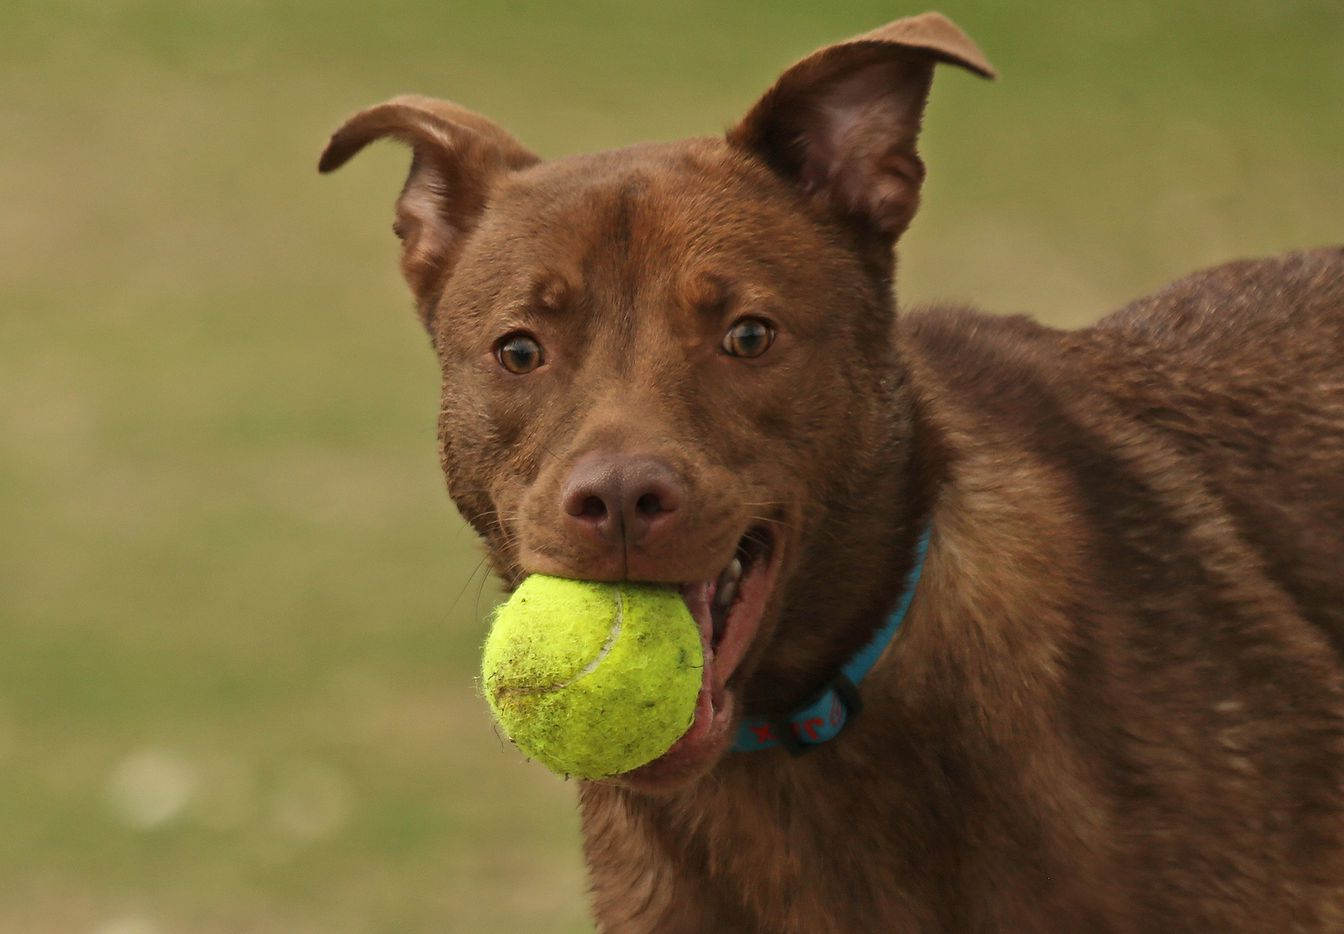 """Jax"" enjoys a game of catch with his owners at NorthBark Dog Park, located near the intersection of the Dallas North Tollway and the Bush Toll Road, photographed on Saturday, April 1, 2017."